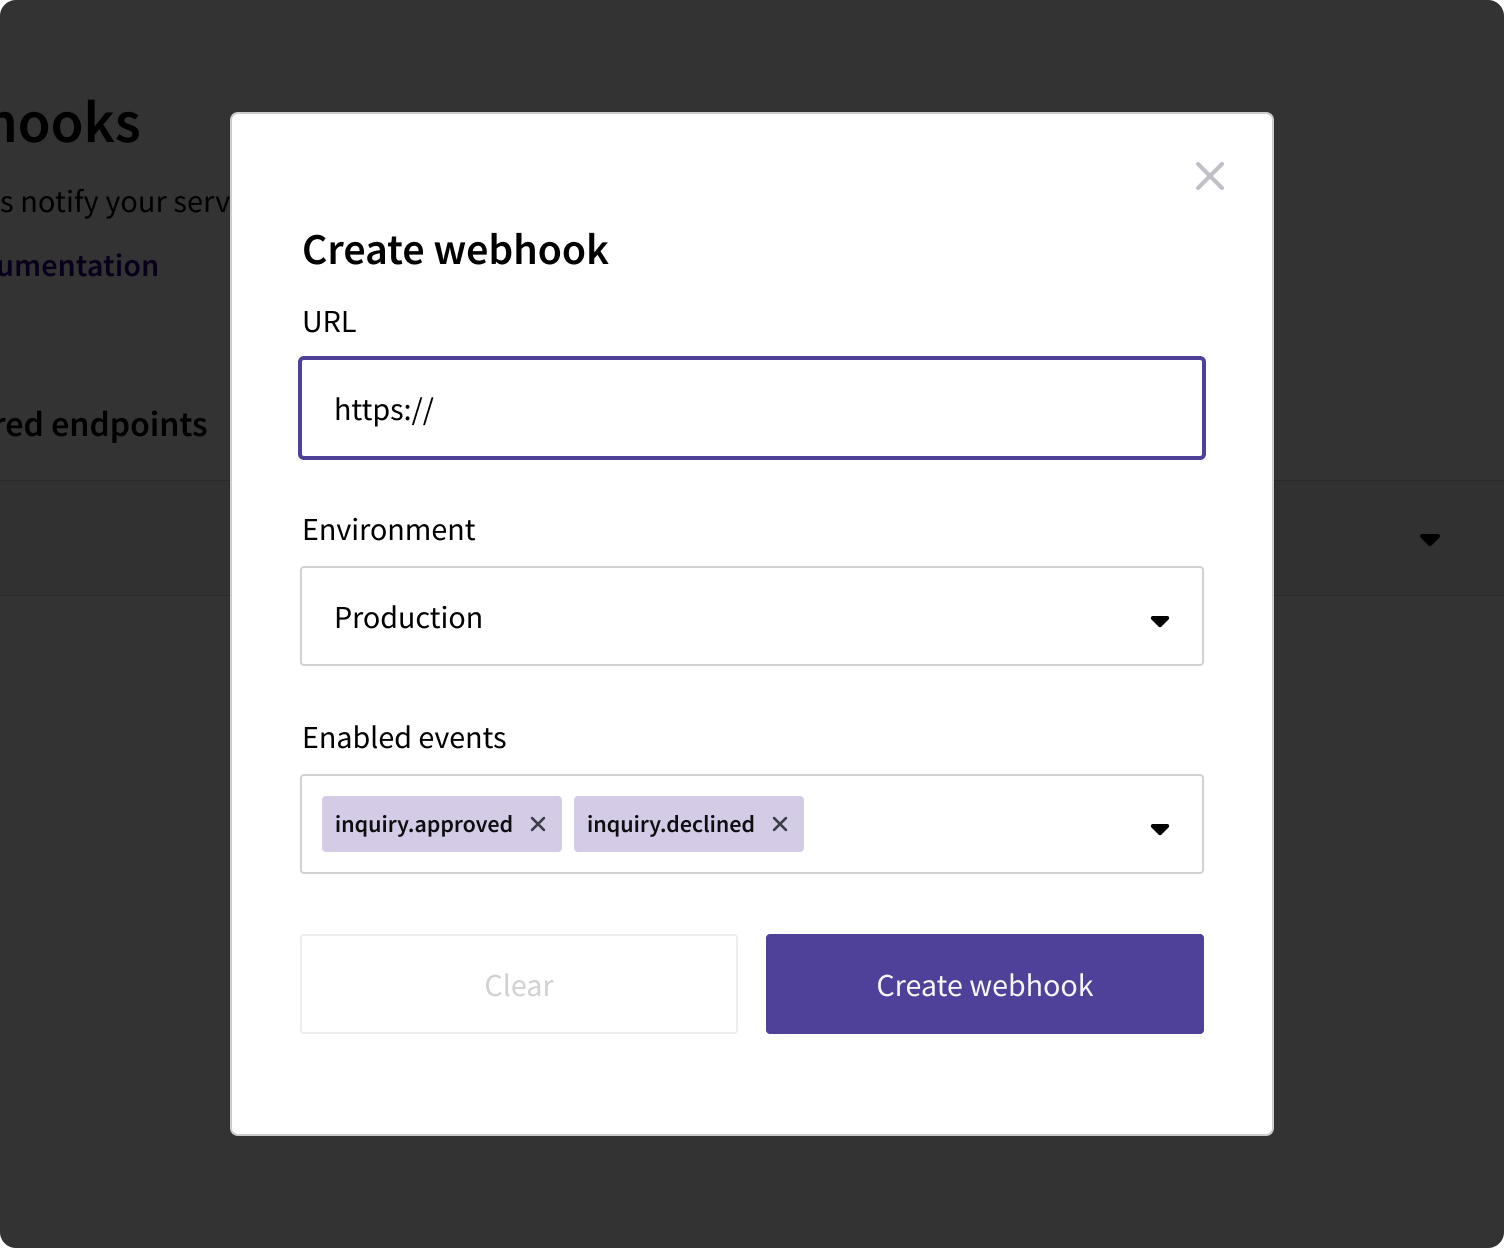 Create a webhook modal dialog in the Persona dashboard.